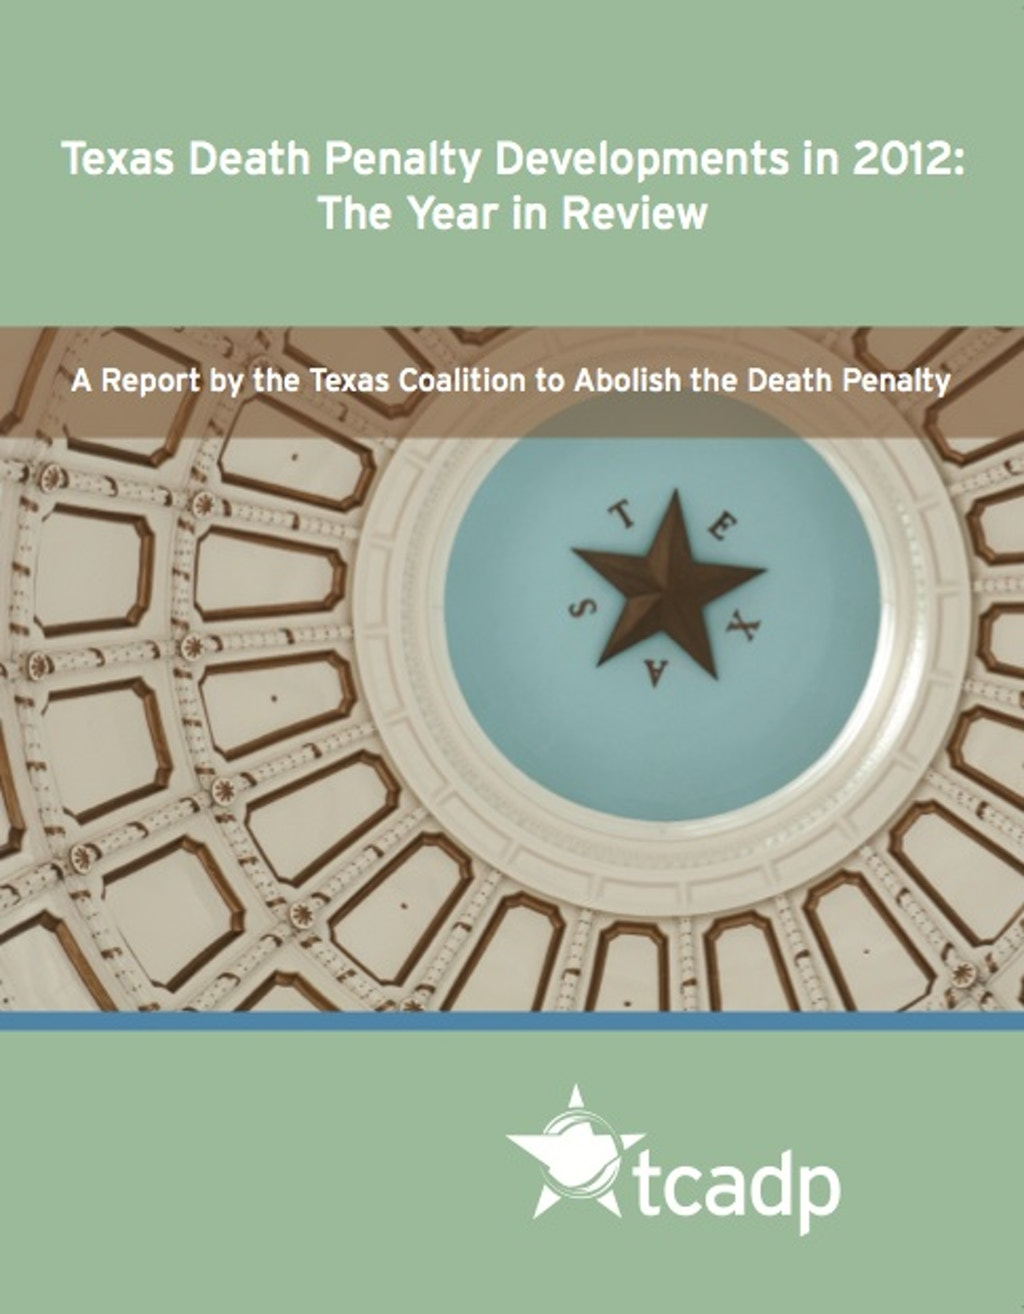 RESOURCES: Death Sentences in Texas Are Fewer and More Geographically Isolated